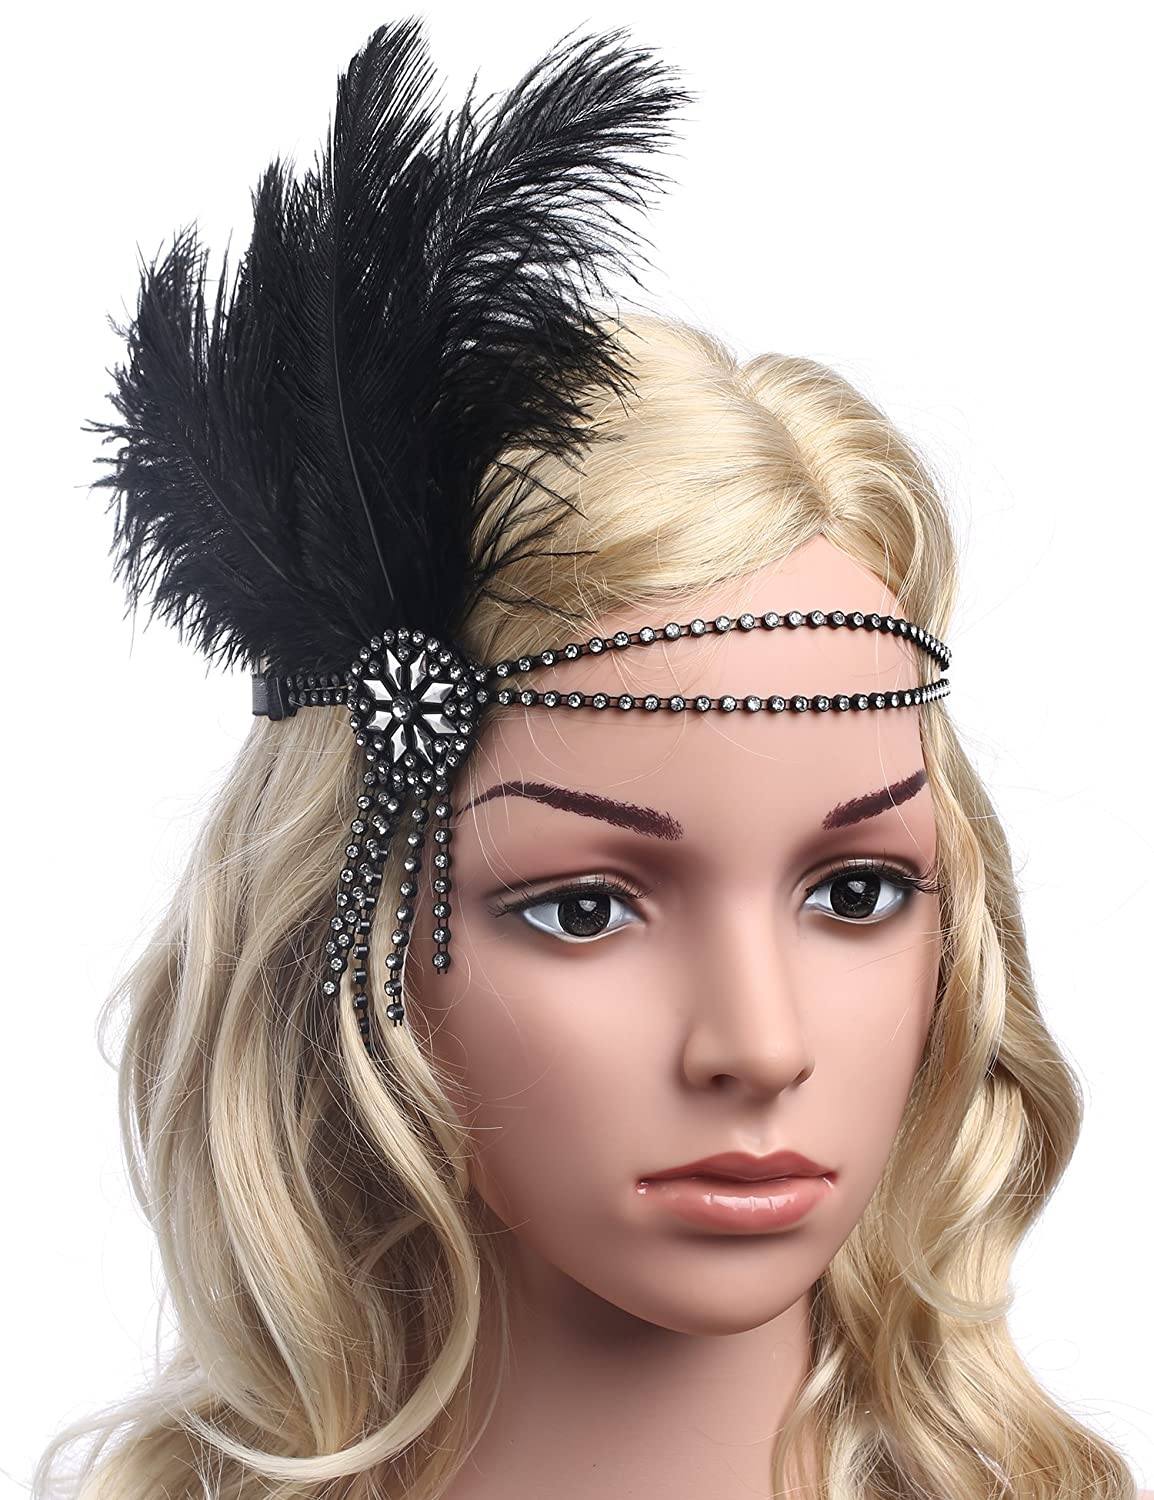 BABEYOND 1920s Flapper Headband 20s Great Gatsby Headpiece Black Feather Headband 1920s Flapper Gatsby Accessories with Tassel and Ribbon (Silver crystals) BABEYOND-H-0152